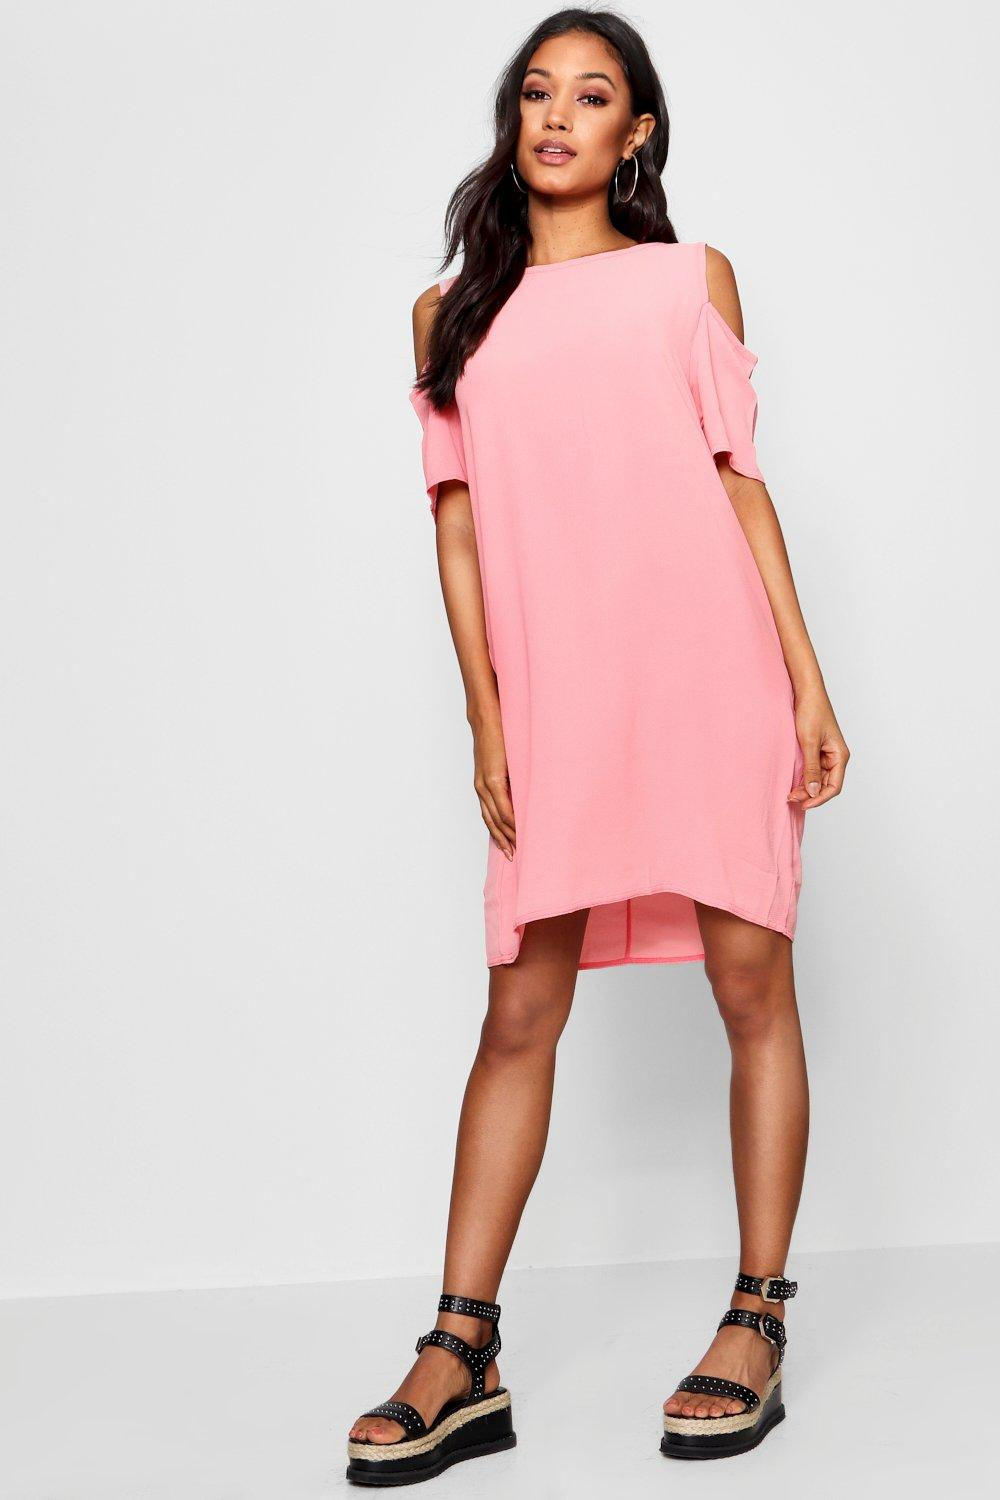 NEW-Boohoo-Womens-Cold-Shoulder-Textured-Shift-Dress-in-Polyester